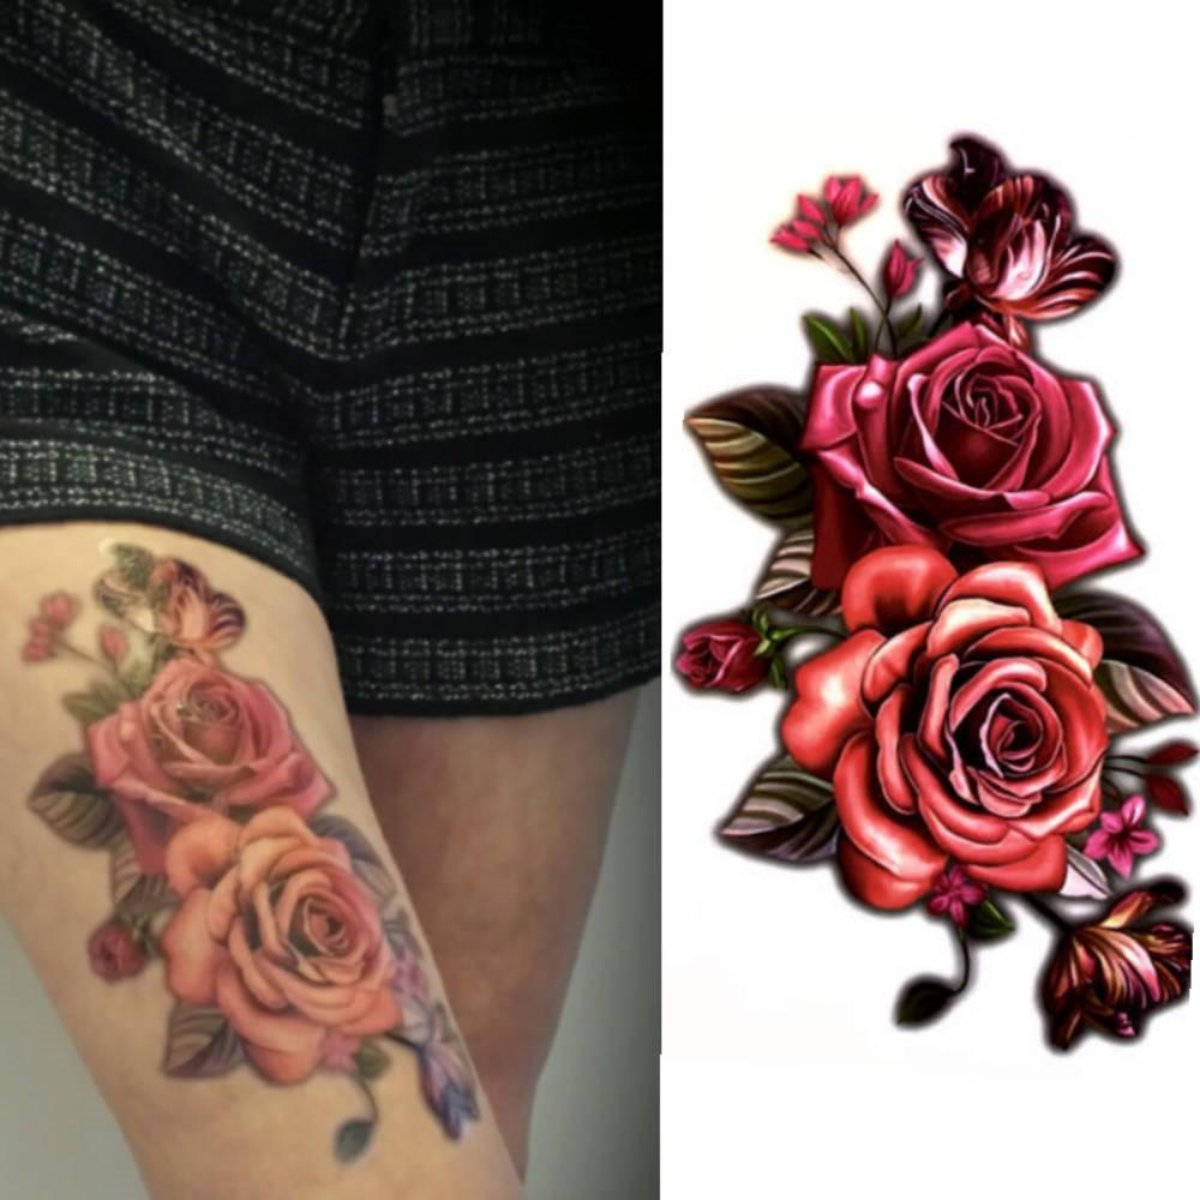 Large Rose Temporary Tattoo